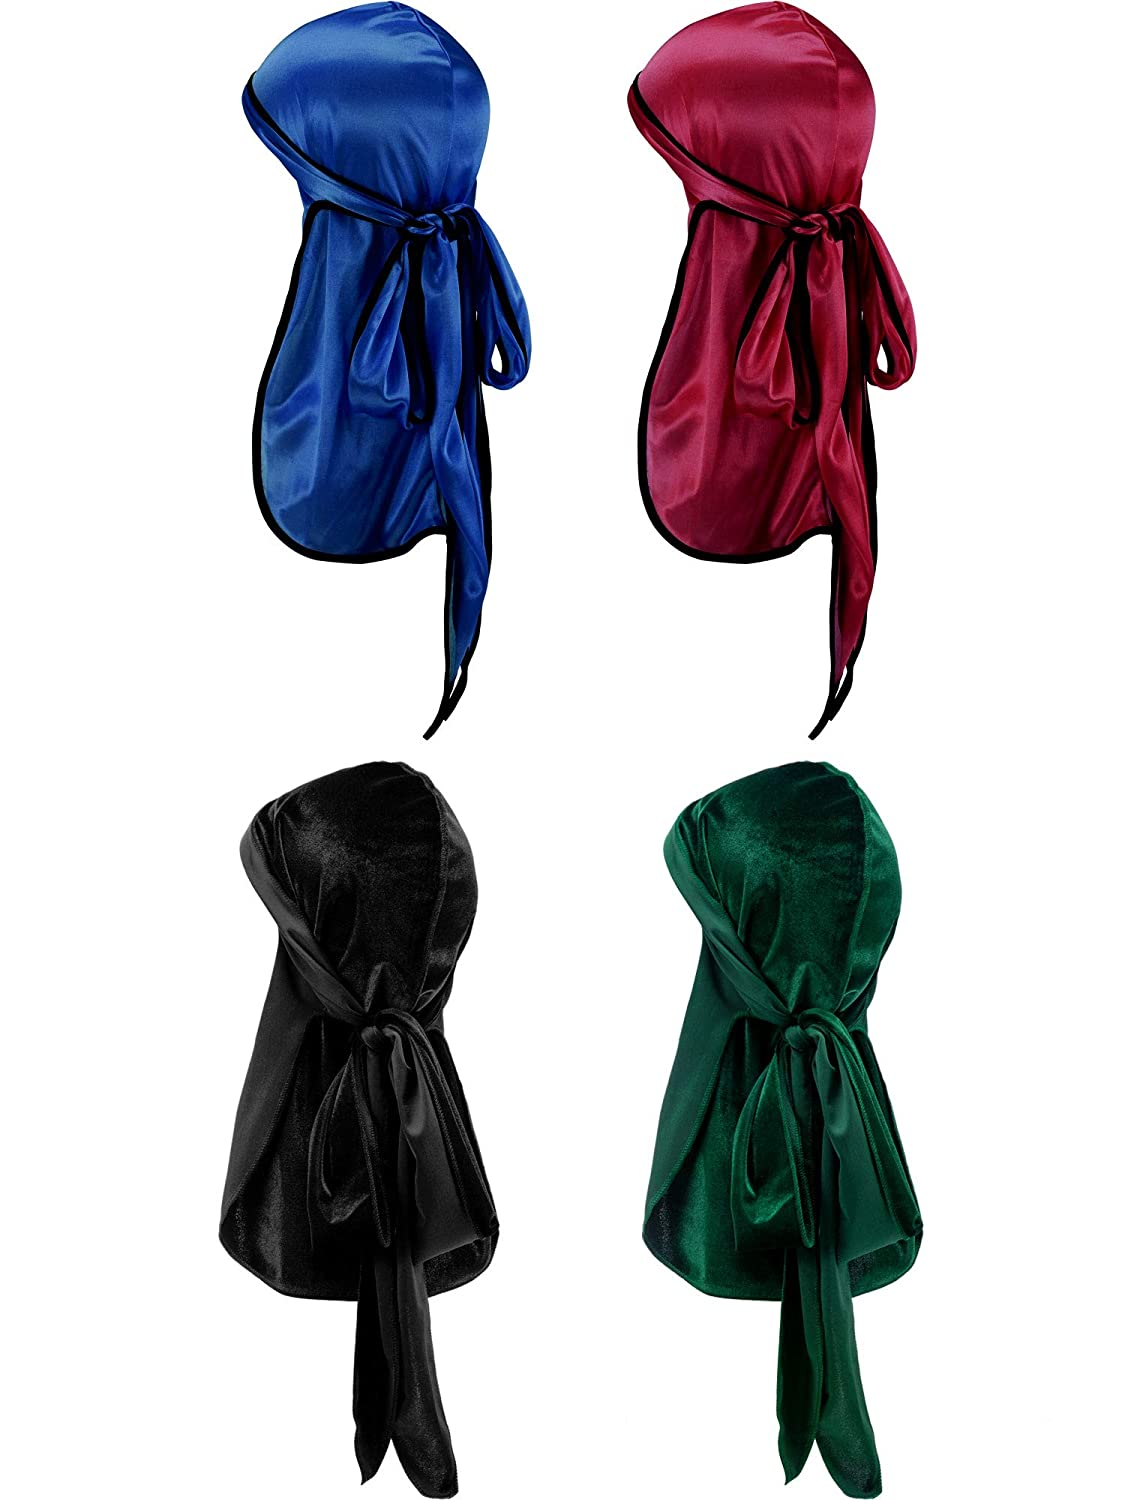 2 Pieces Velvet Durag 2 Pieces Silky Soft Durag Cap Headwraps Long Tail Wide Straps 360 Waves